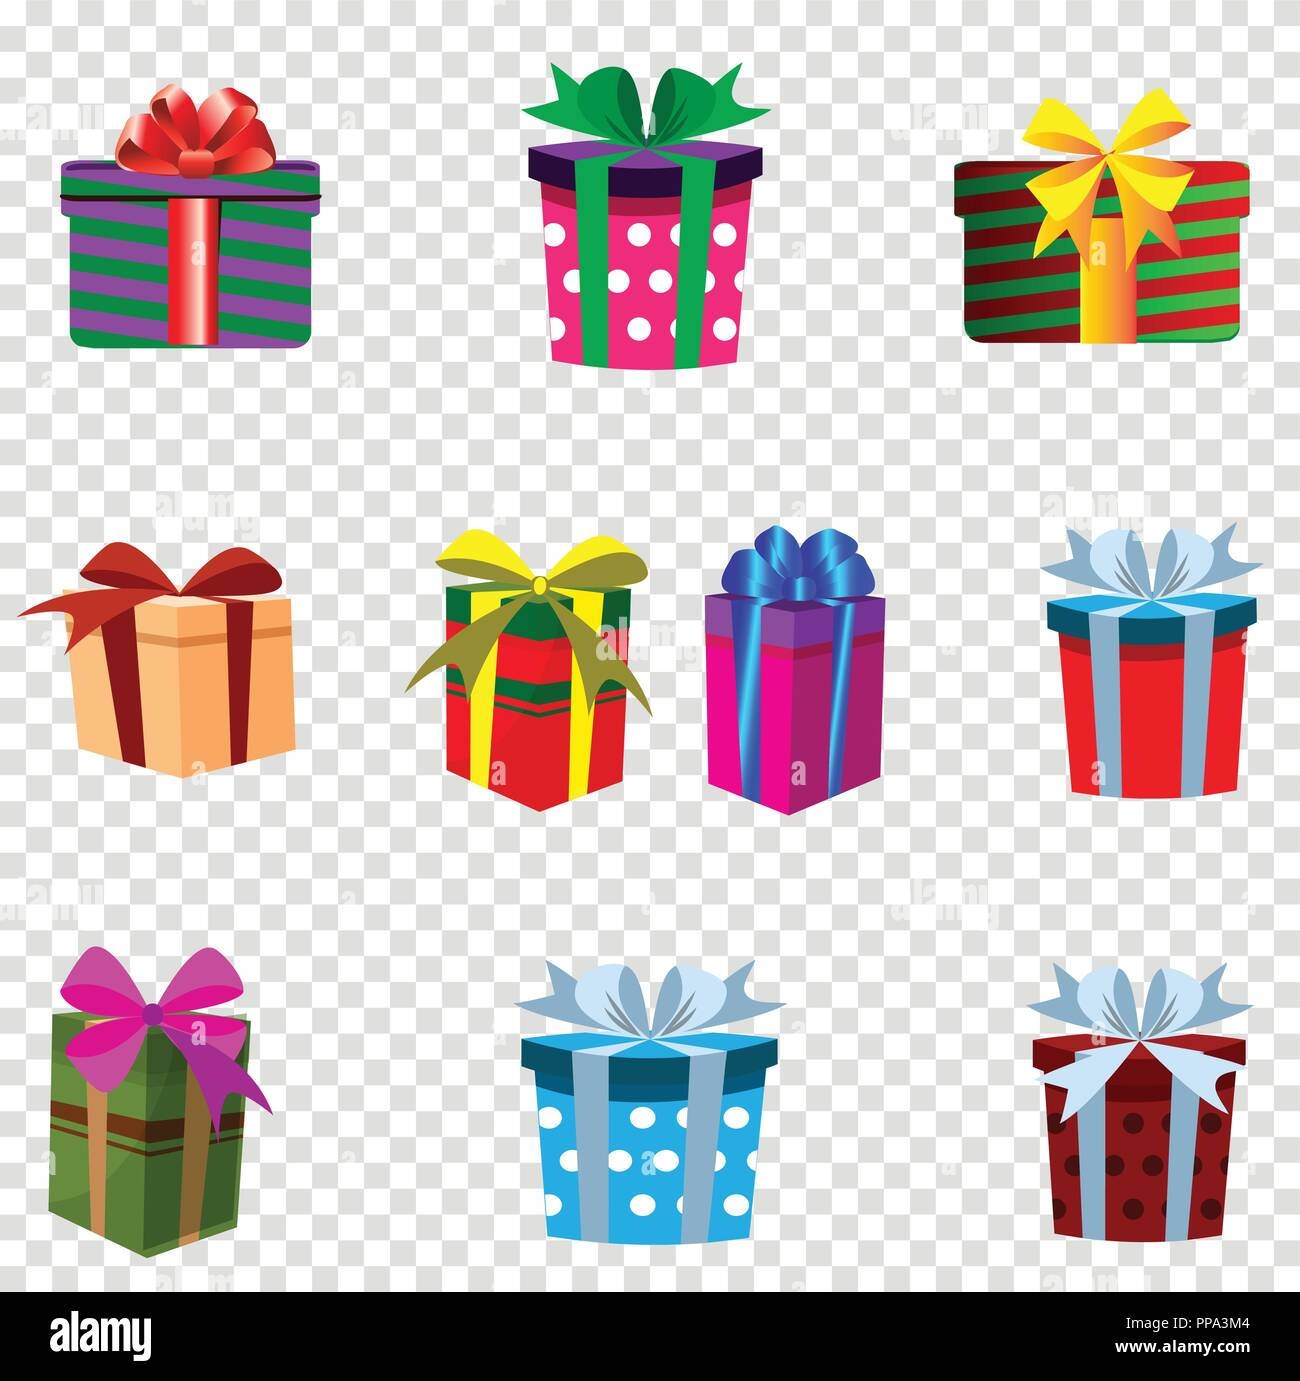 vector set of colourful gift boxes isolated on transparent background christmas new year valentine birthday festive icons clip art presents decor